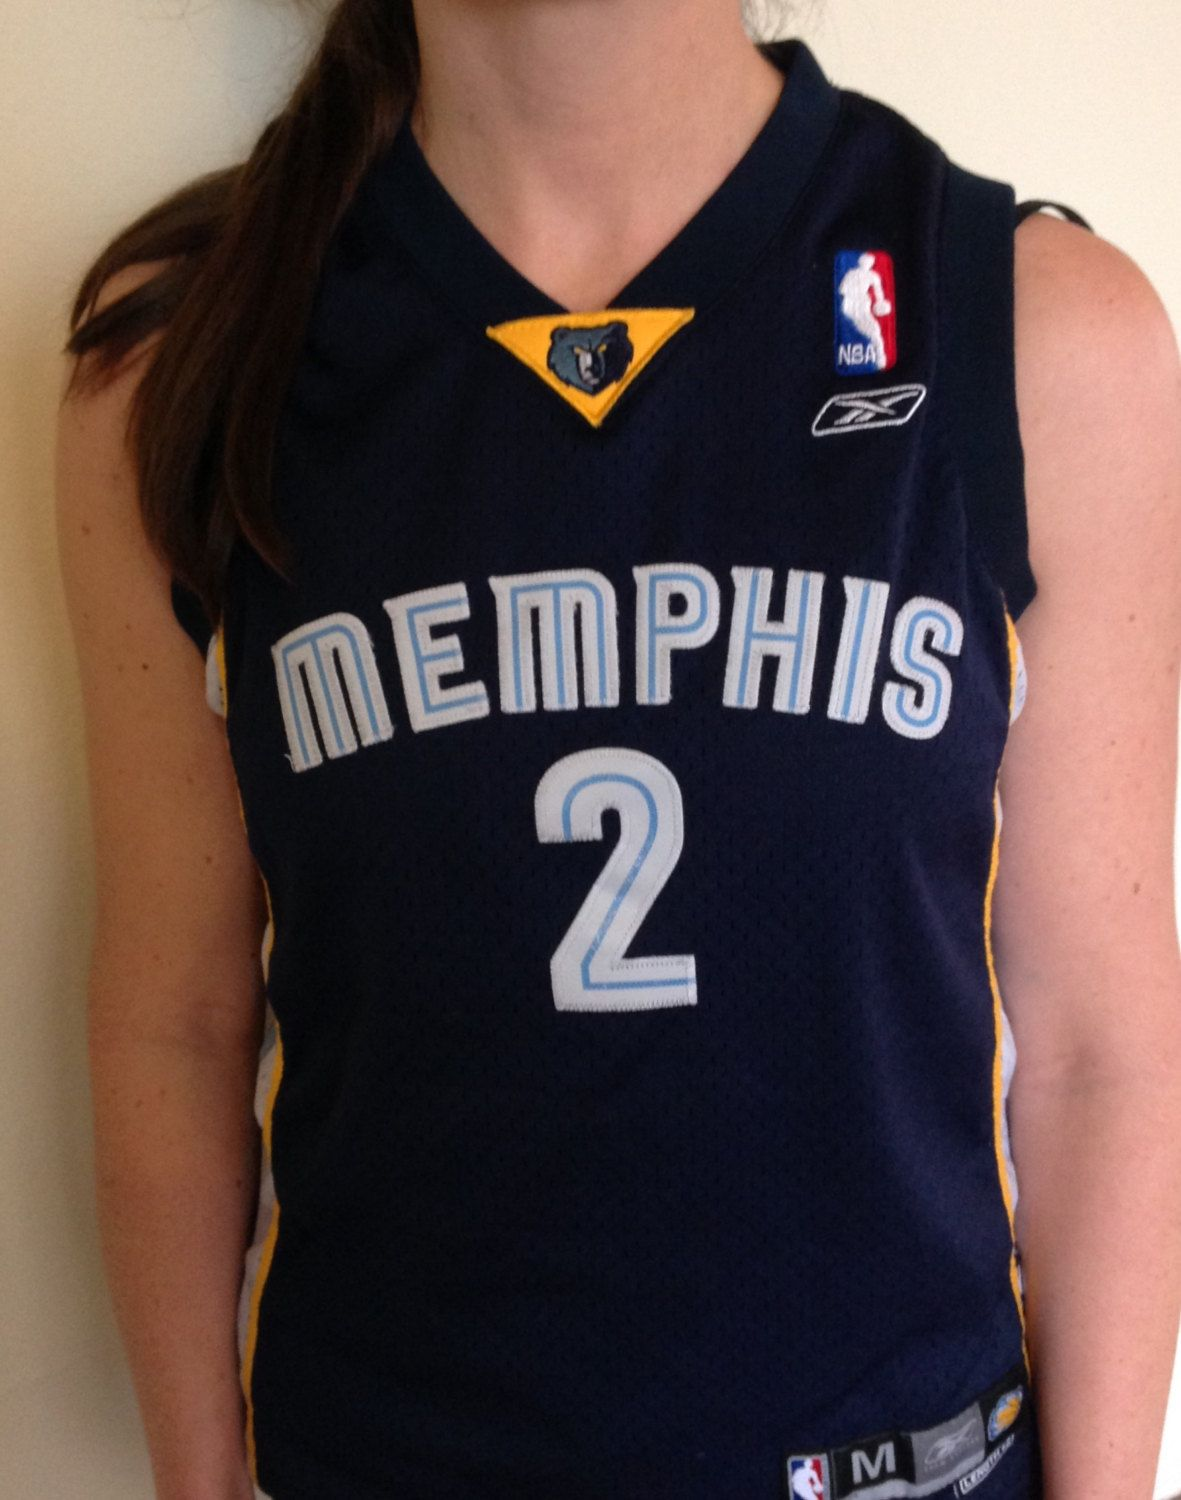 c575d0361 Ladies NBA Stitched Jason Williams Memphis Grizzlies Basketball Jersey By  Reebok Extra Small by BucketBusterVintage on Etsy